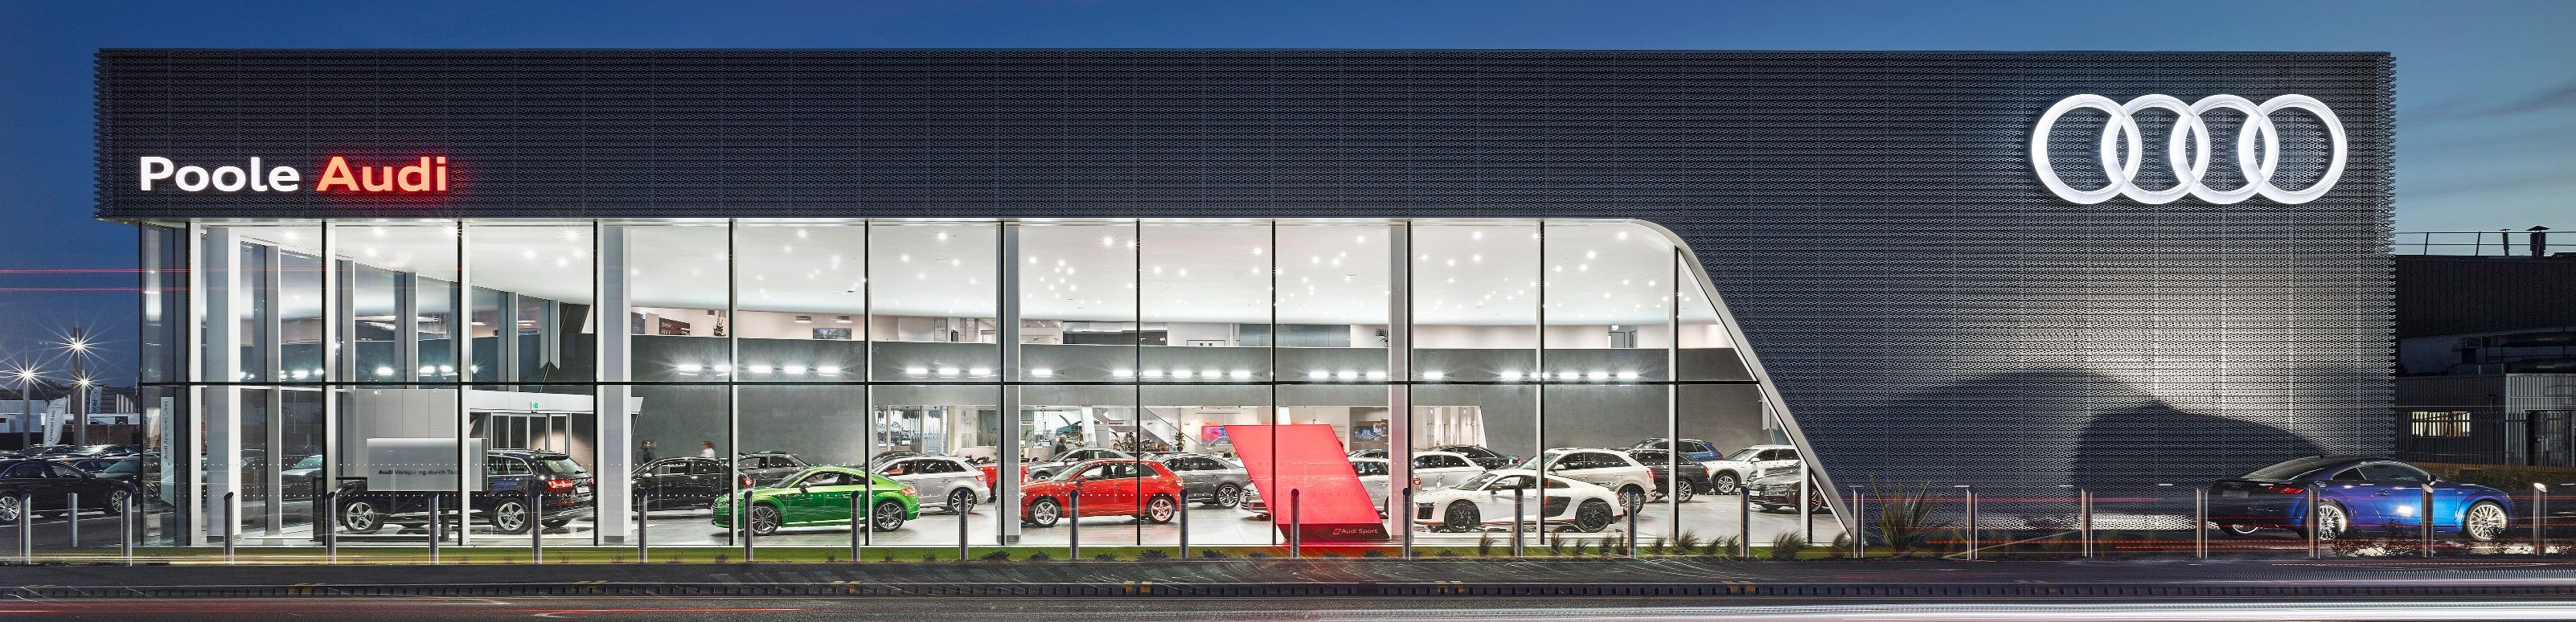 Business at Poole Audi